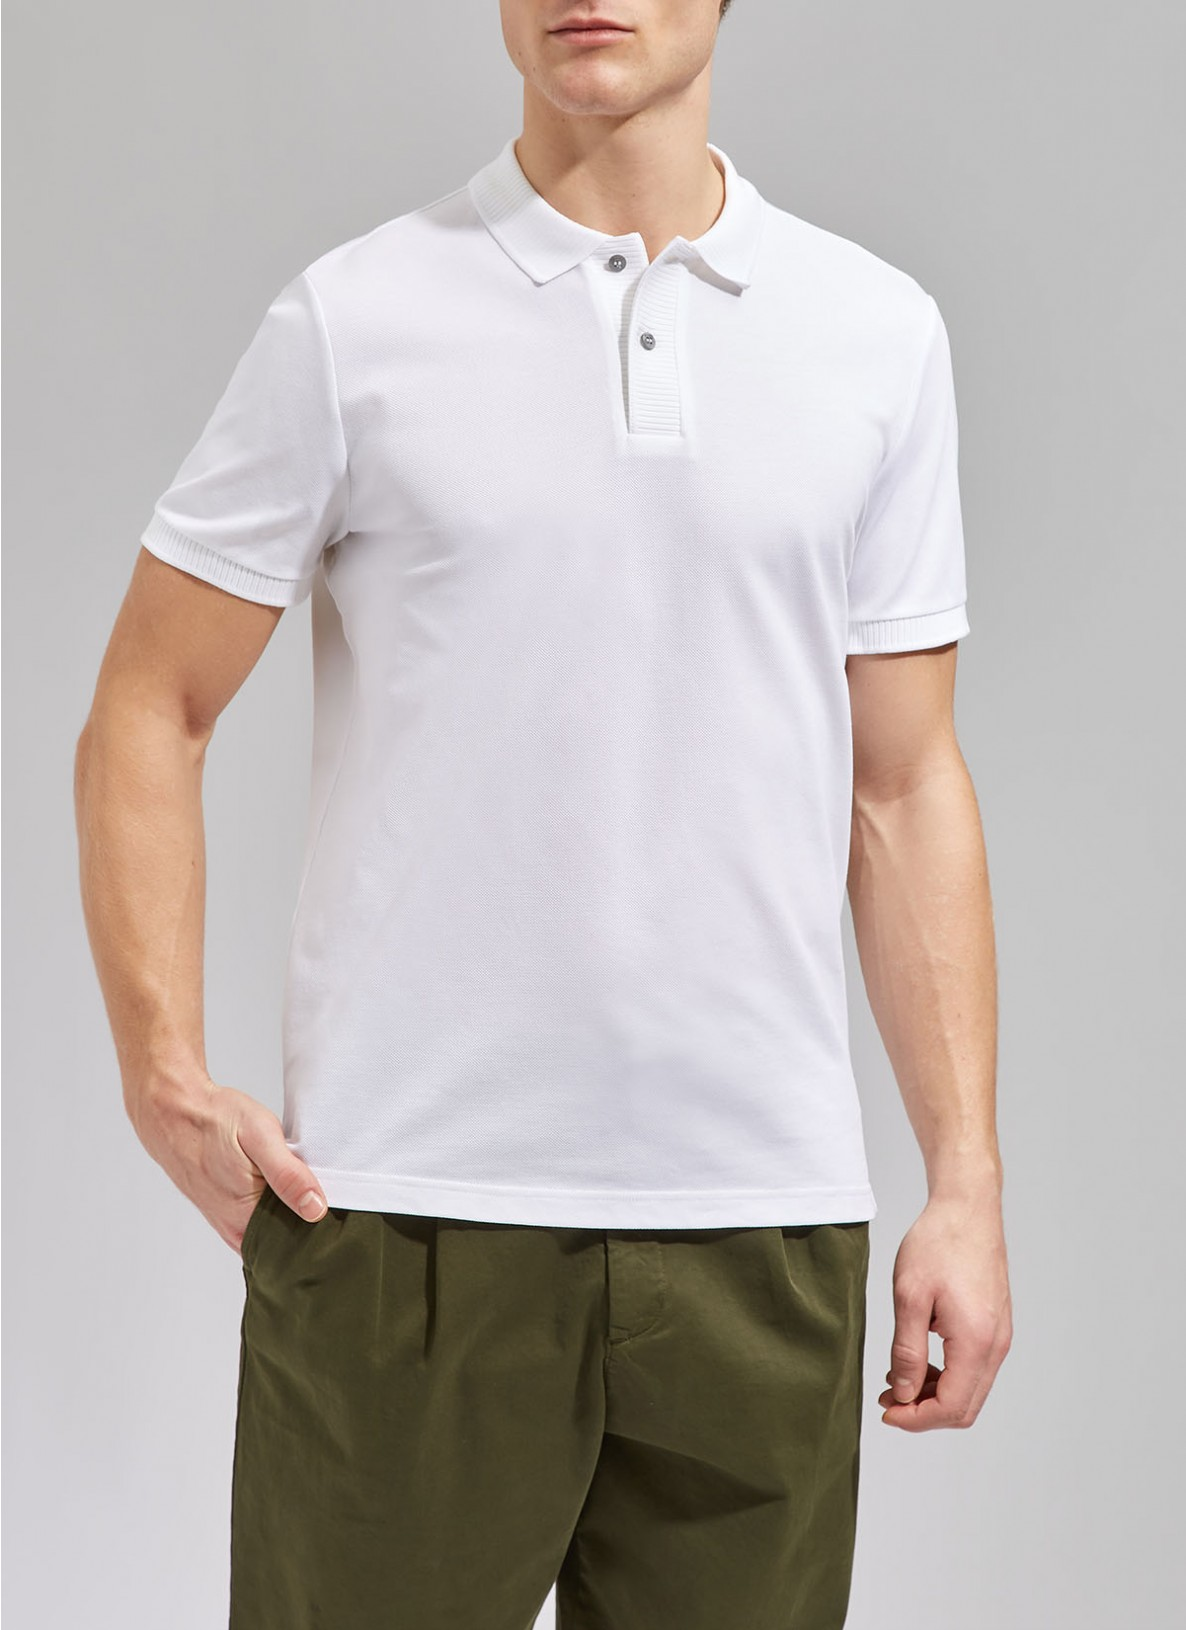 Shirt Polohemd, Knopf 1/2 Arm, Pure White Frontansicht